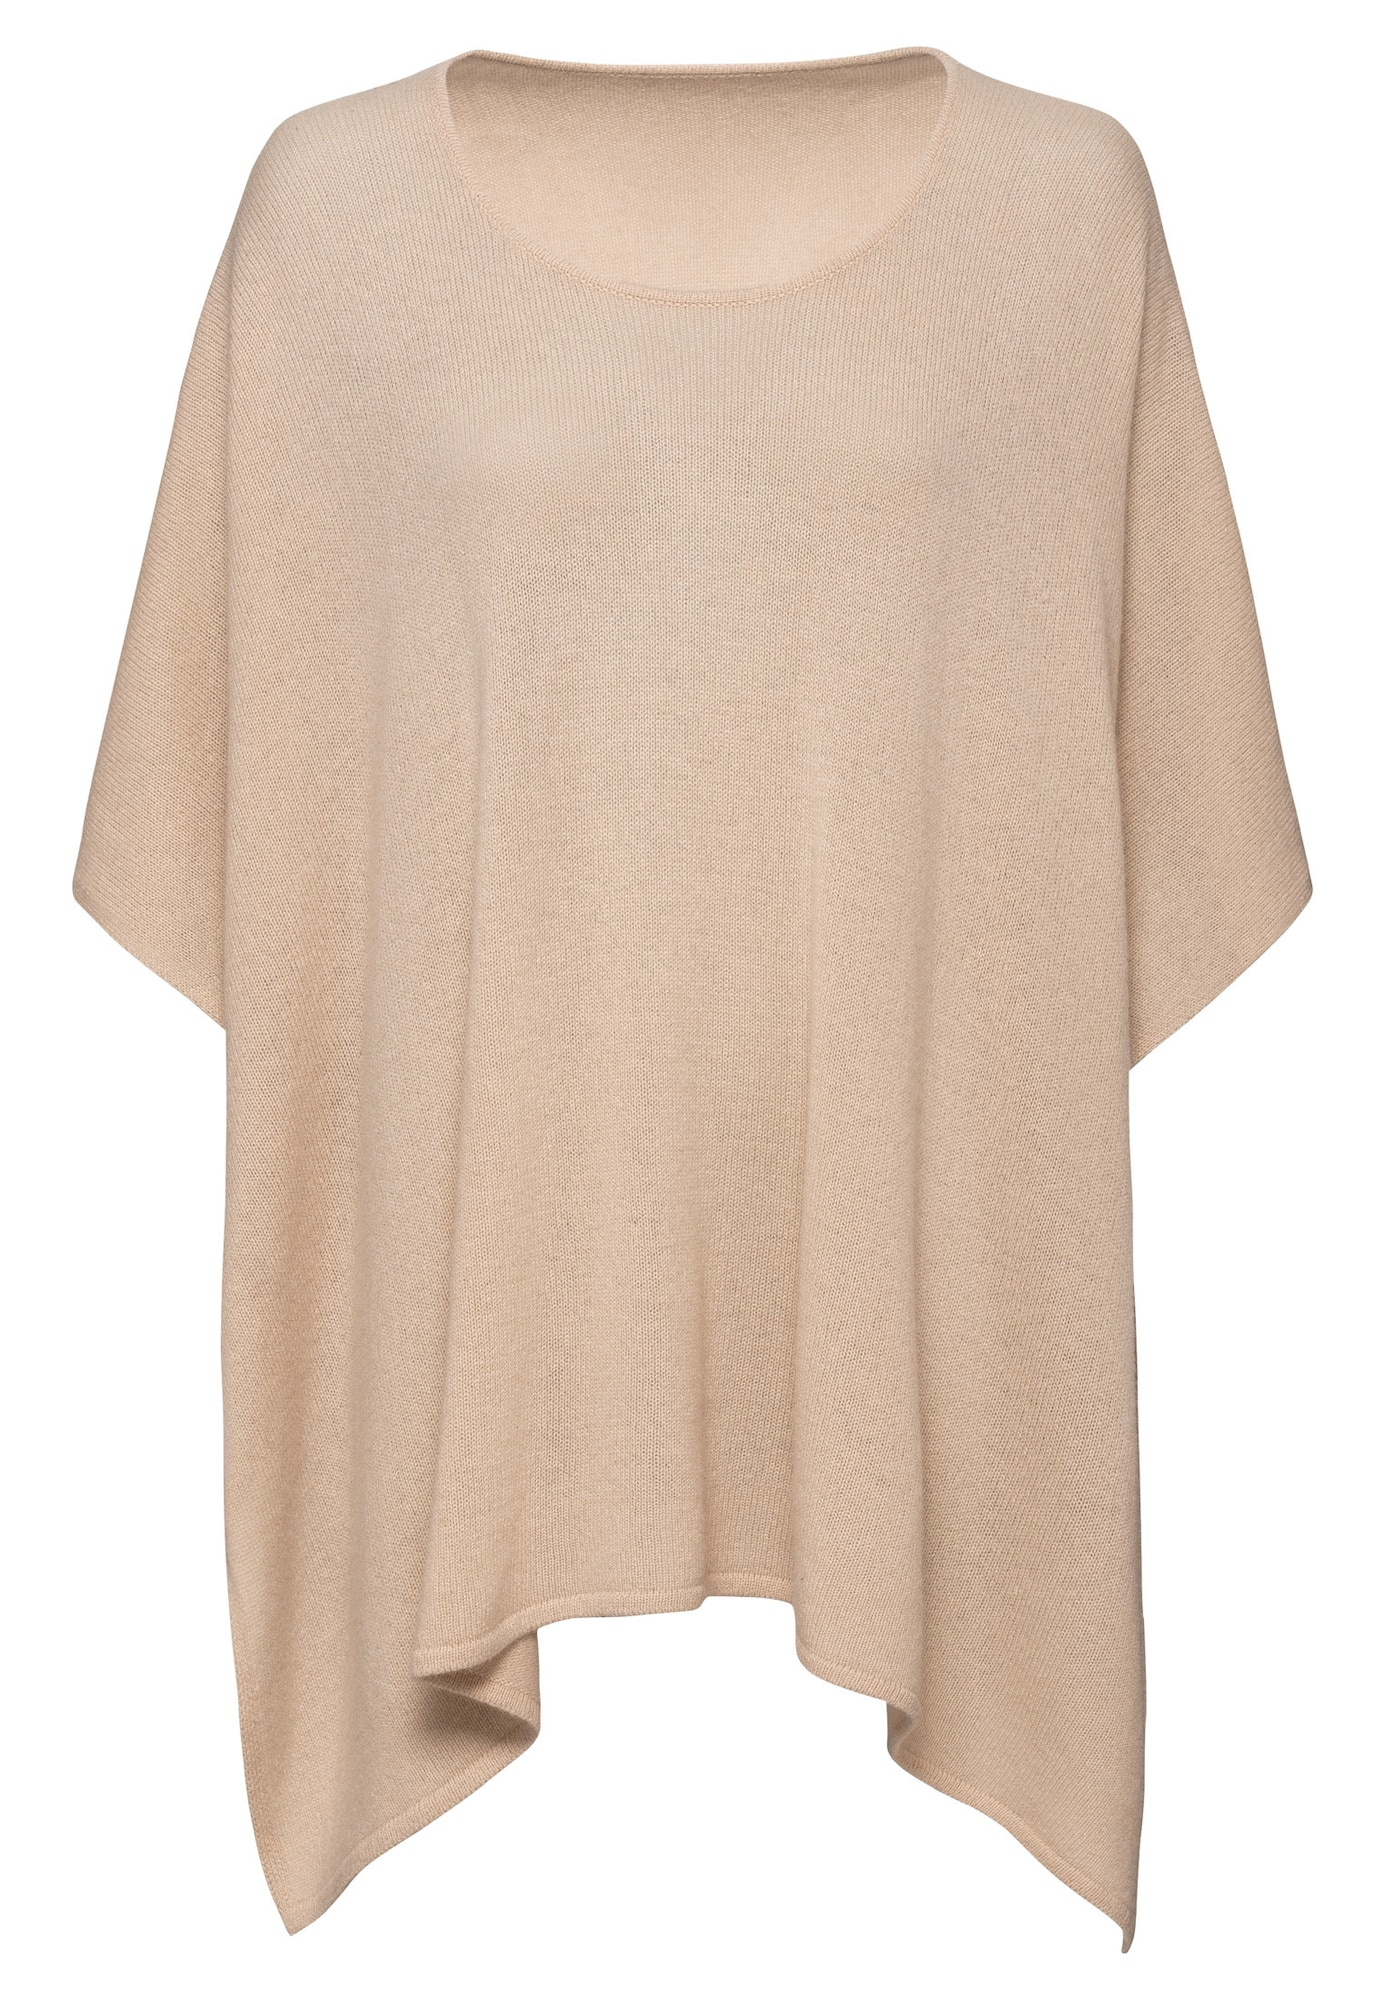 Poncho | Bekleidung > Pullover > Ponchos & Capes | HALLHUBER